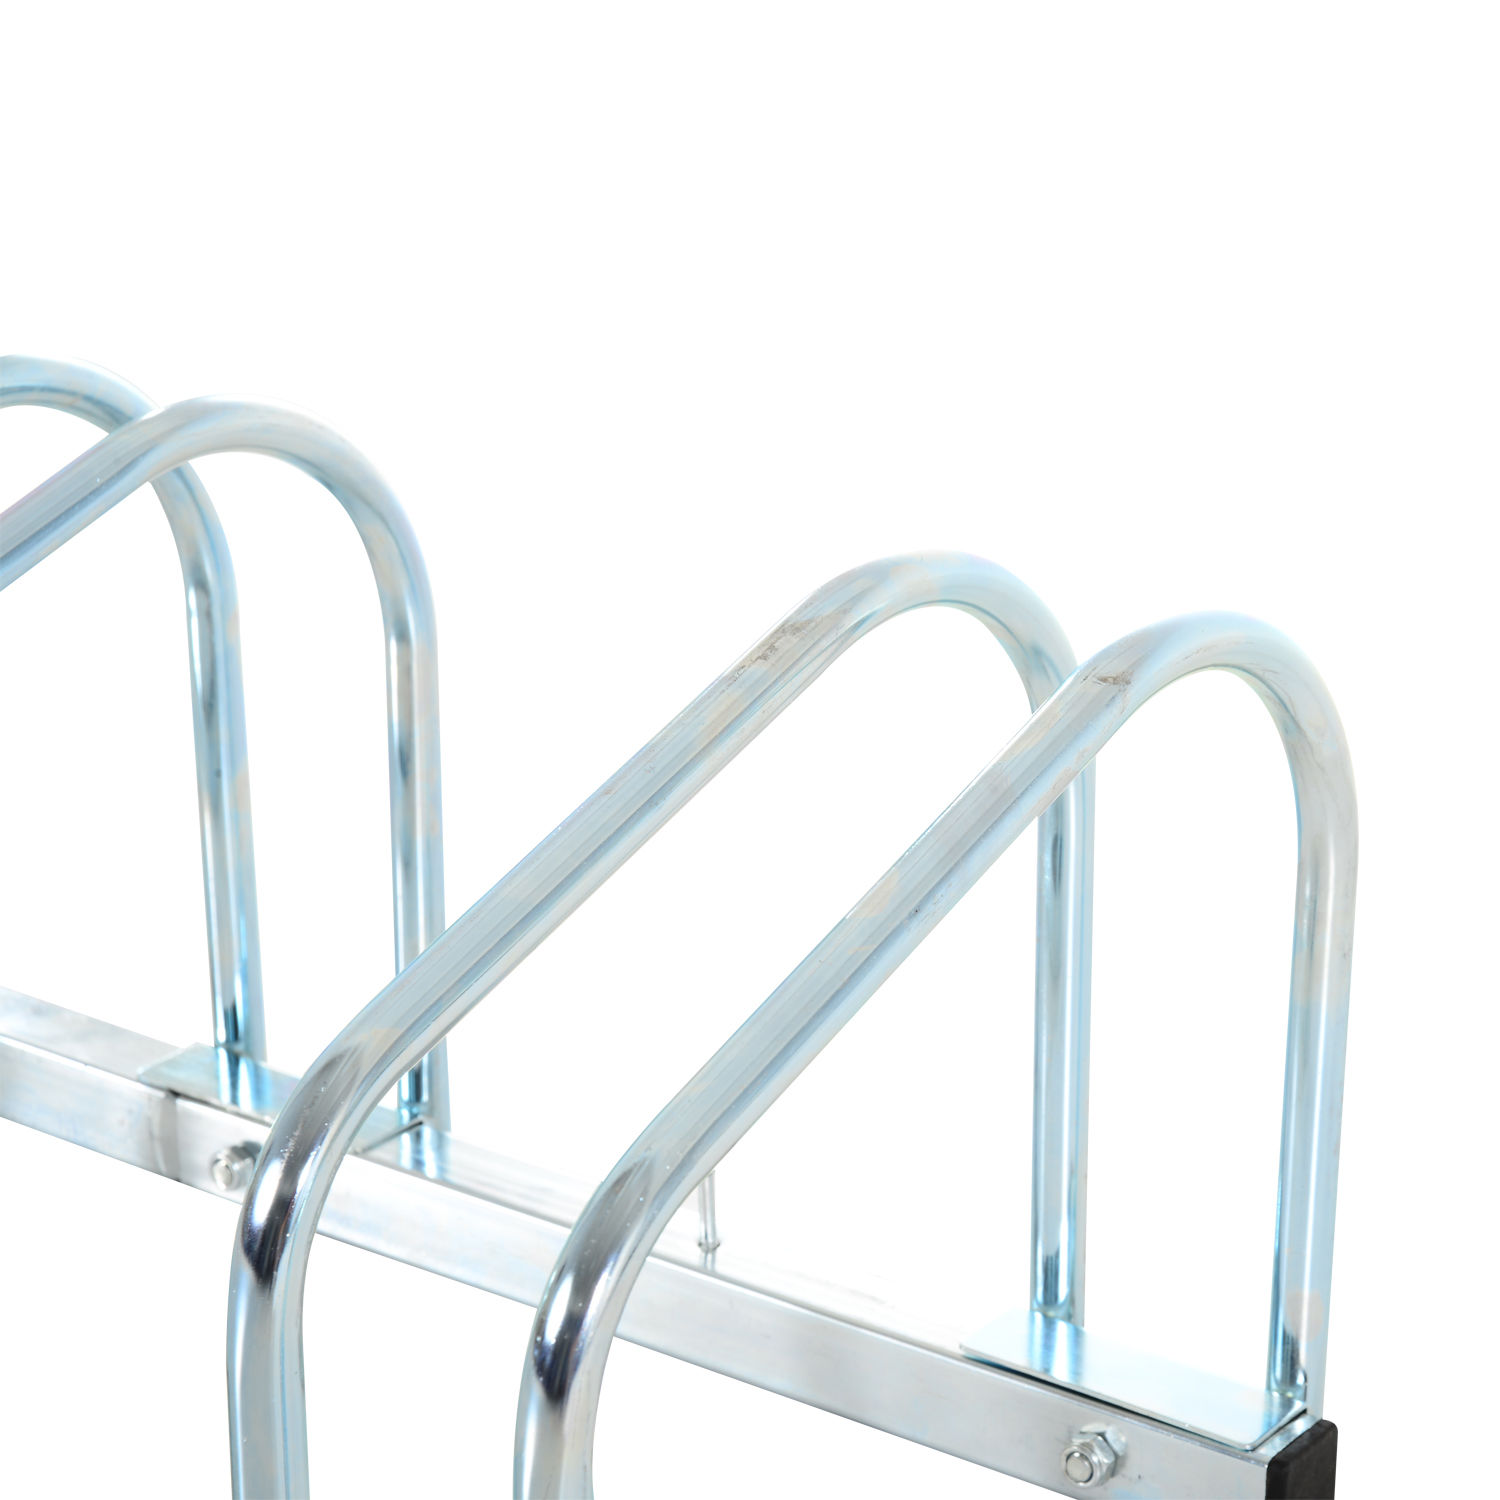 Bicycle-Bike-Parking-Cycle-Floor-Rack-Stand-Storage-Mount-Holder-Steel-Pipe miniatura 9